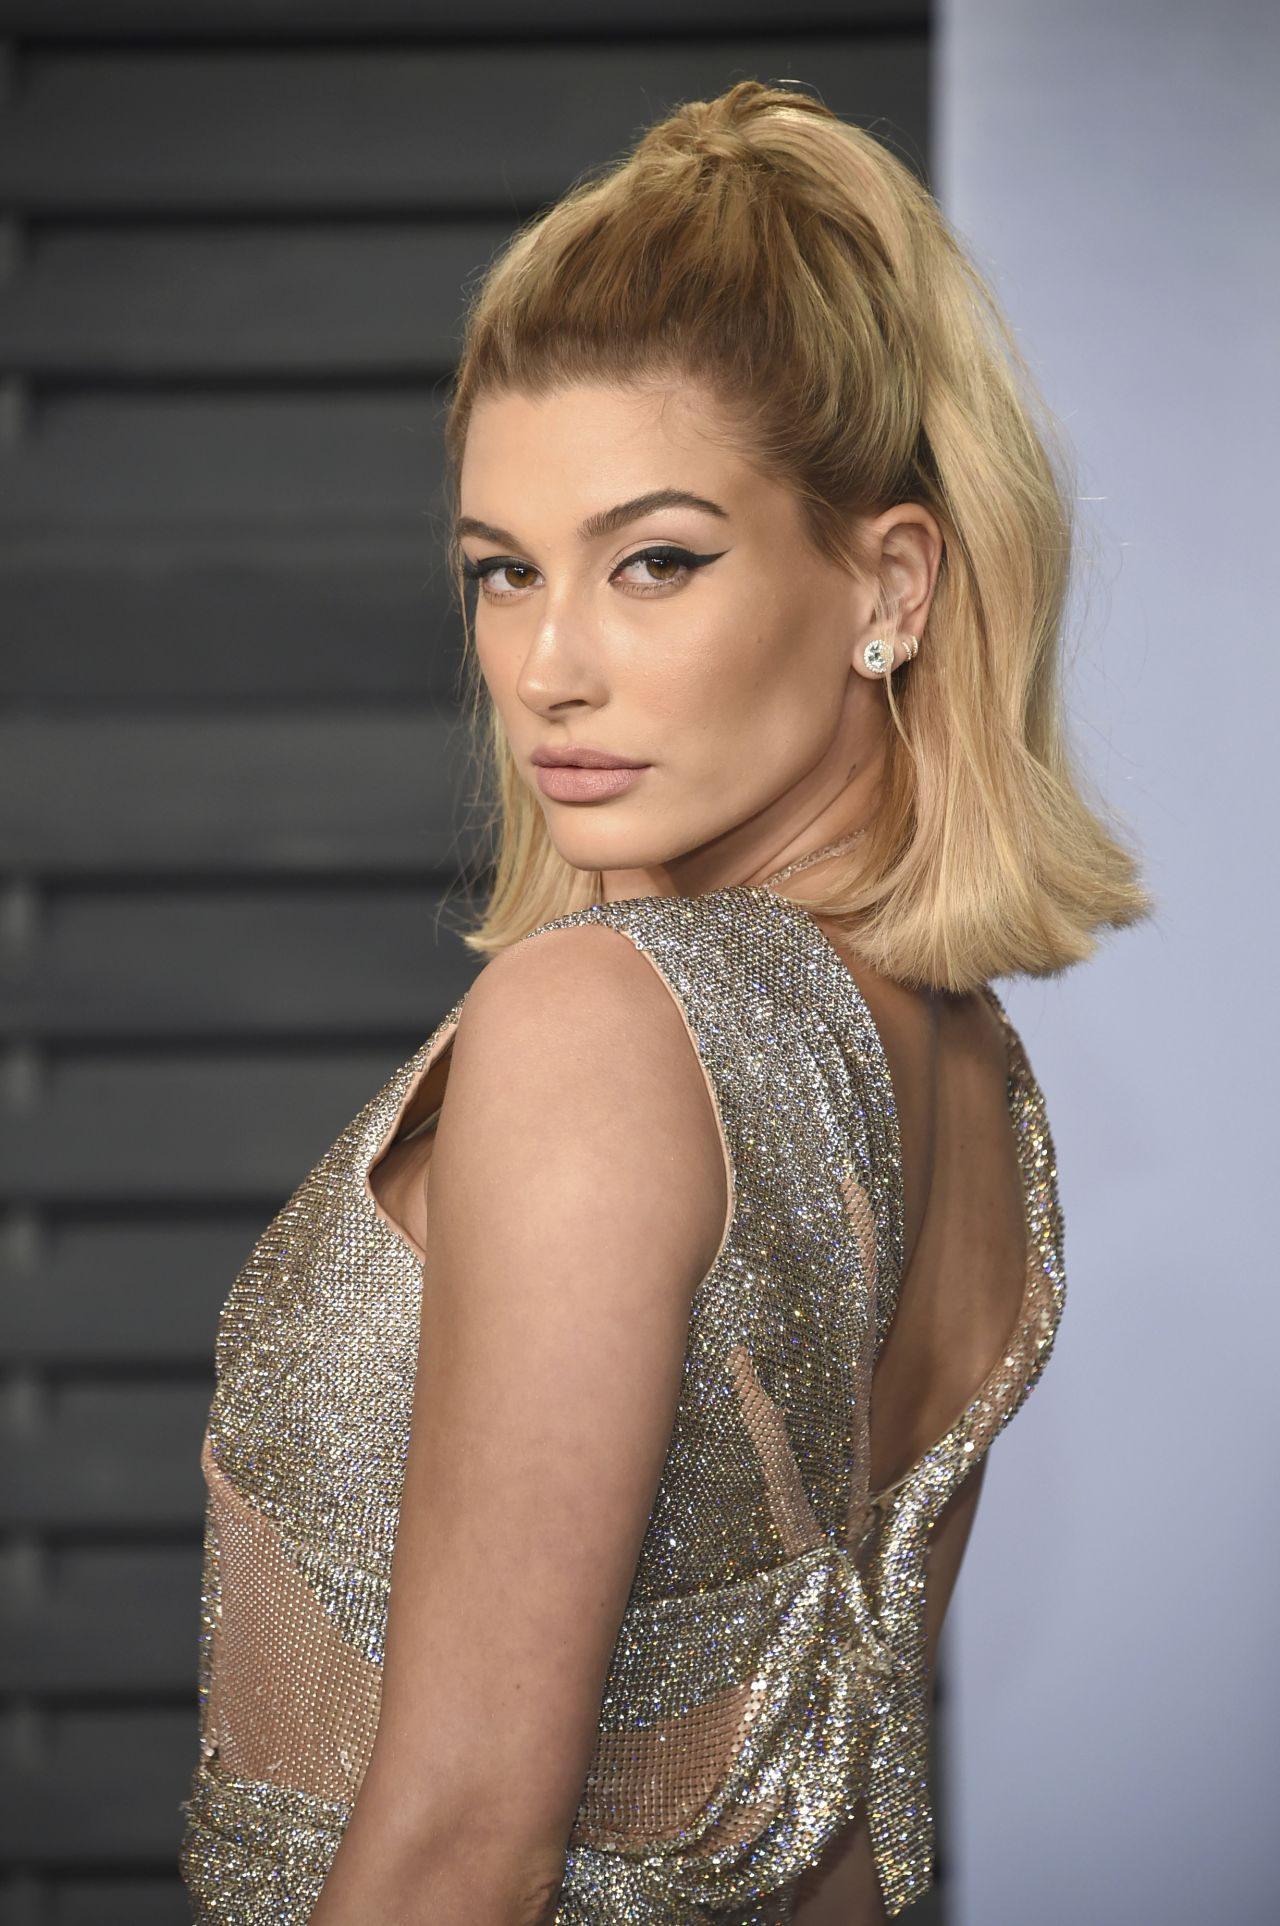 hailey baldwin - photo #9